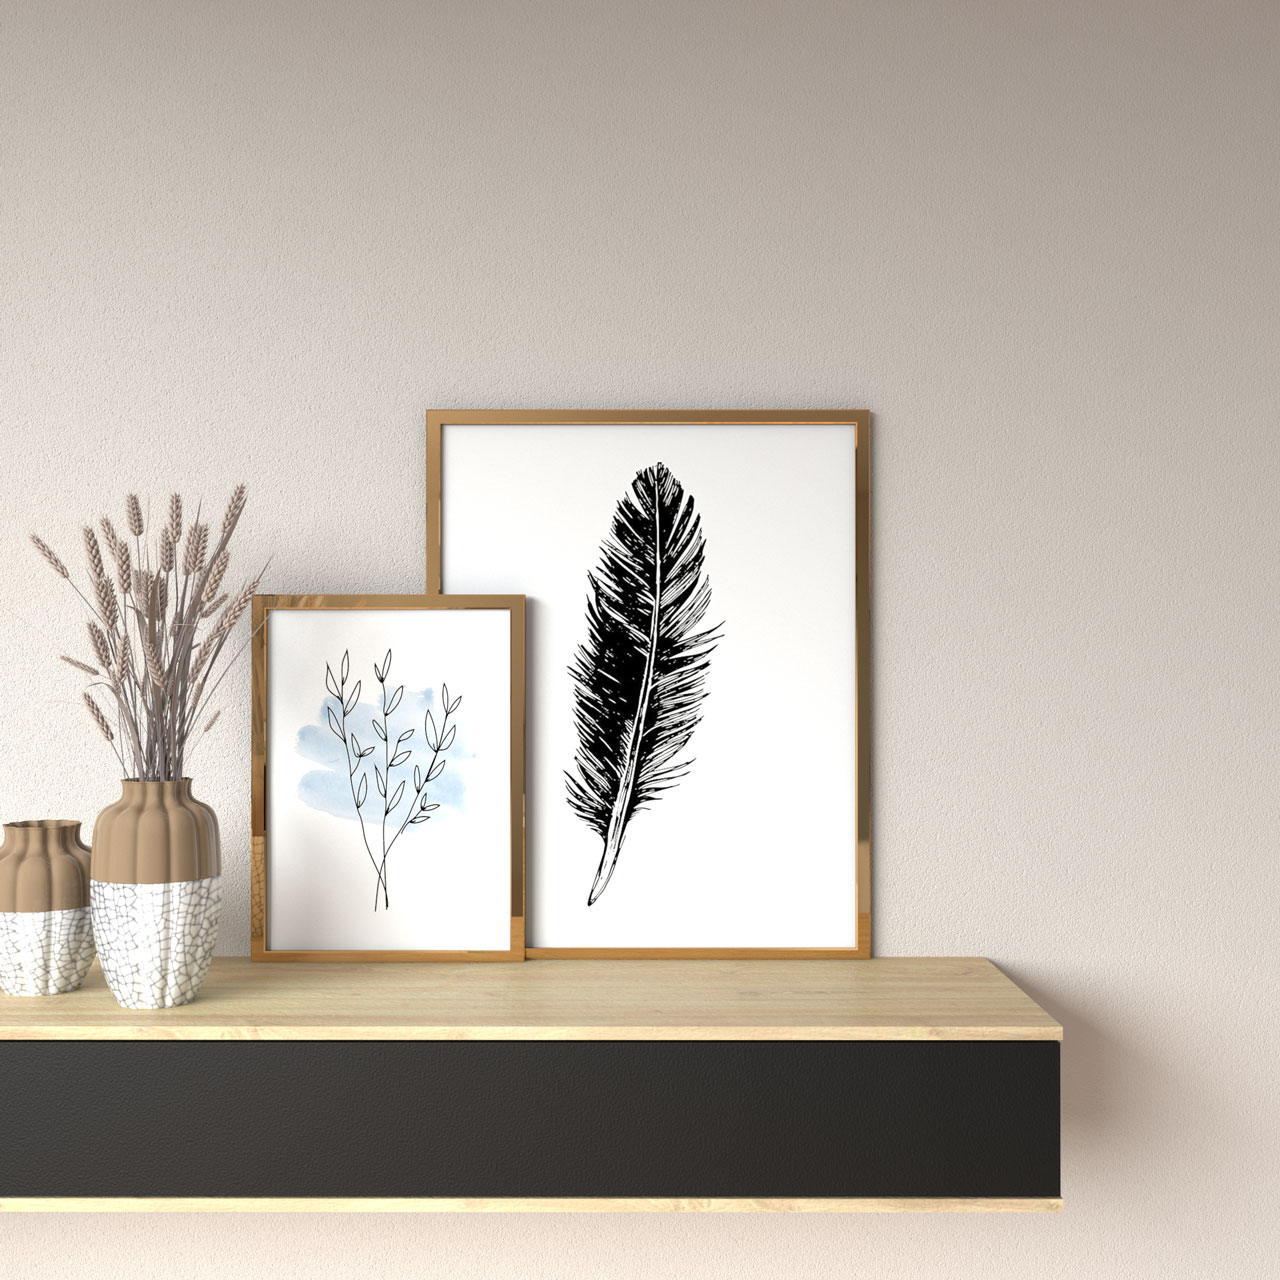 Light taupe wall with gold picture frame